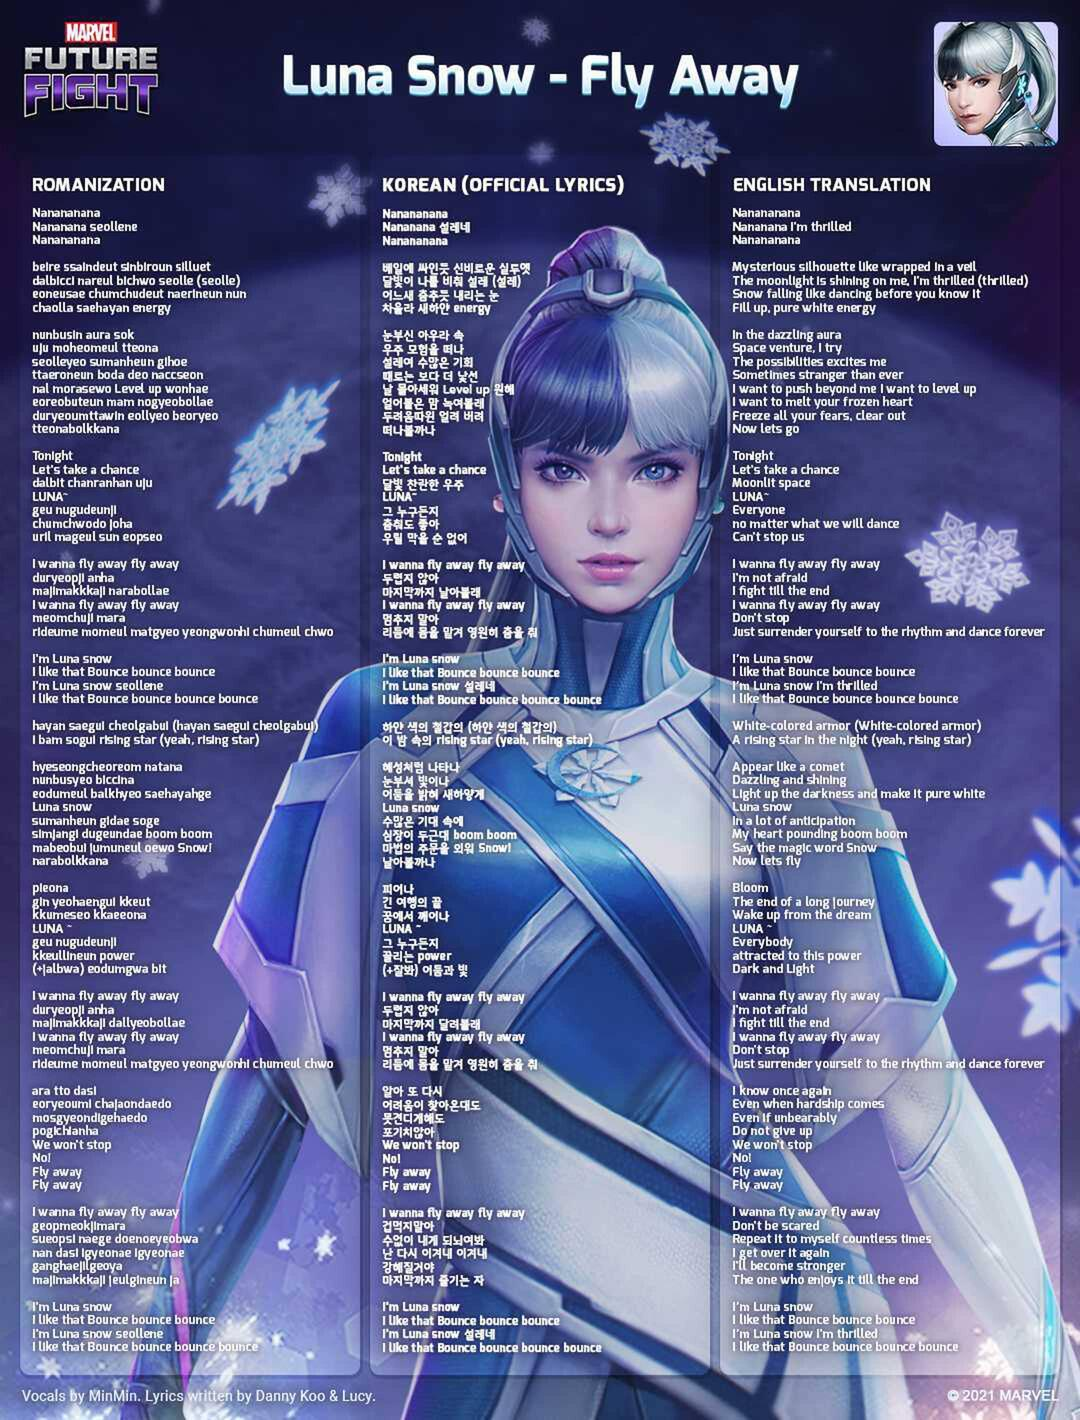 """MARVEL Future Fight Luna Snow """"Fly Away"""" Songsheet Lyrics Korean and English Vocals by MinMin Written by Danny Koo & Lucy"""